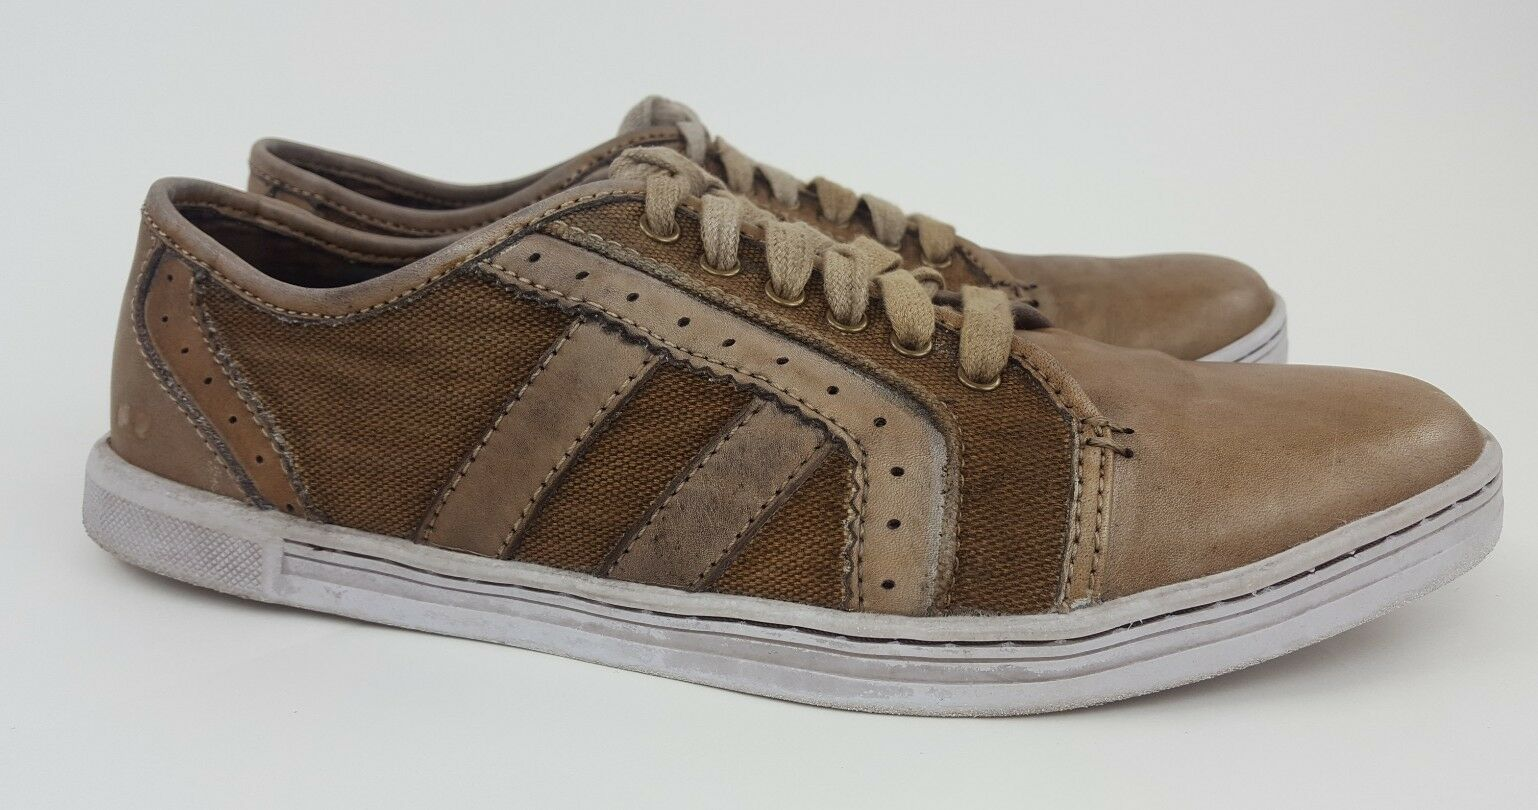 BED STU NASH BROWN LEATHER / CANVAS LACE UP UP UP CASUAL SNEAKER SHOES Uomo SIZE 12 d5cd47